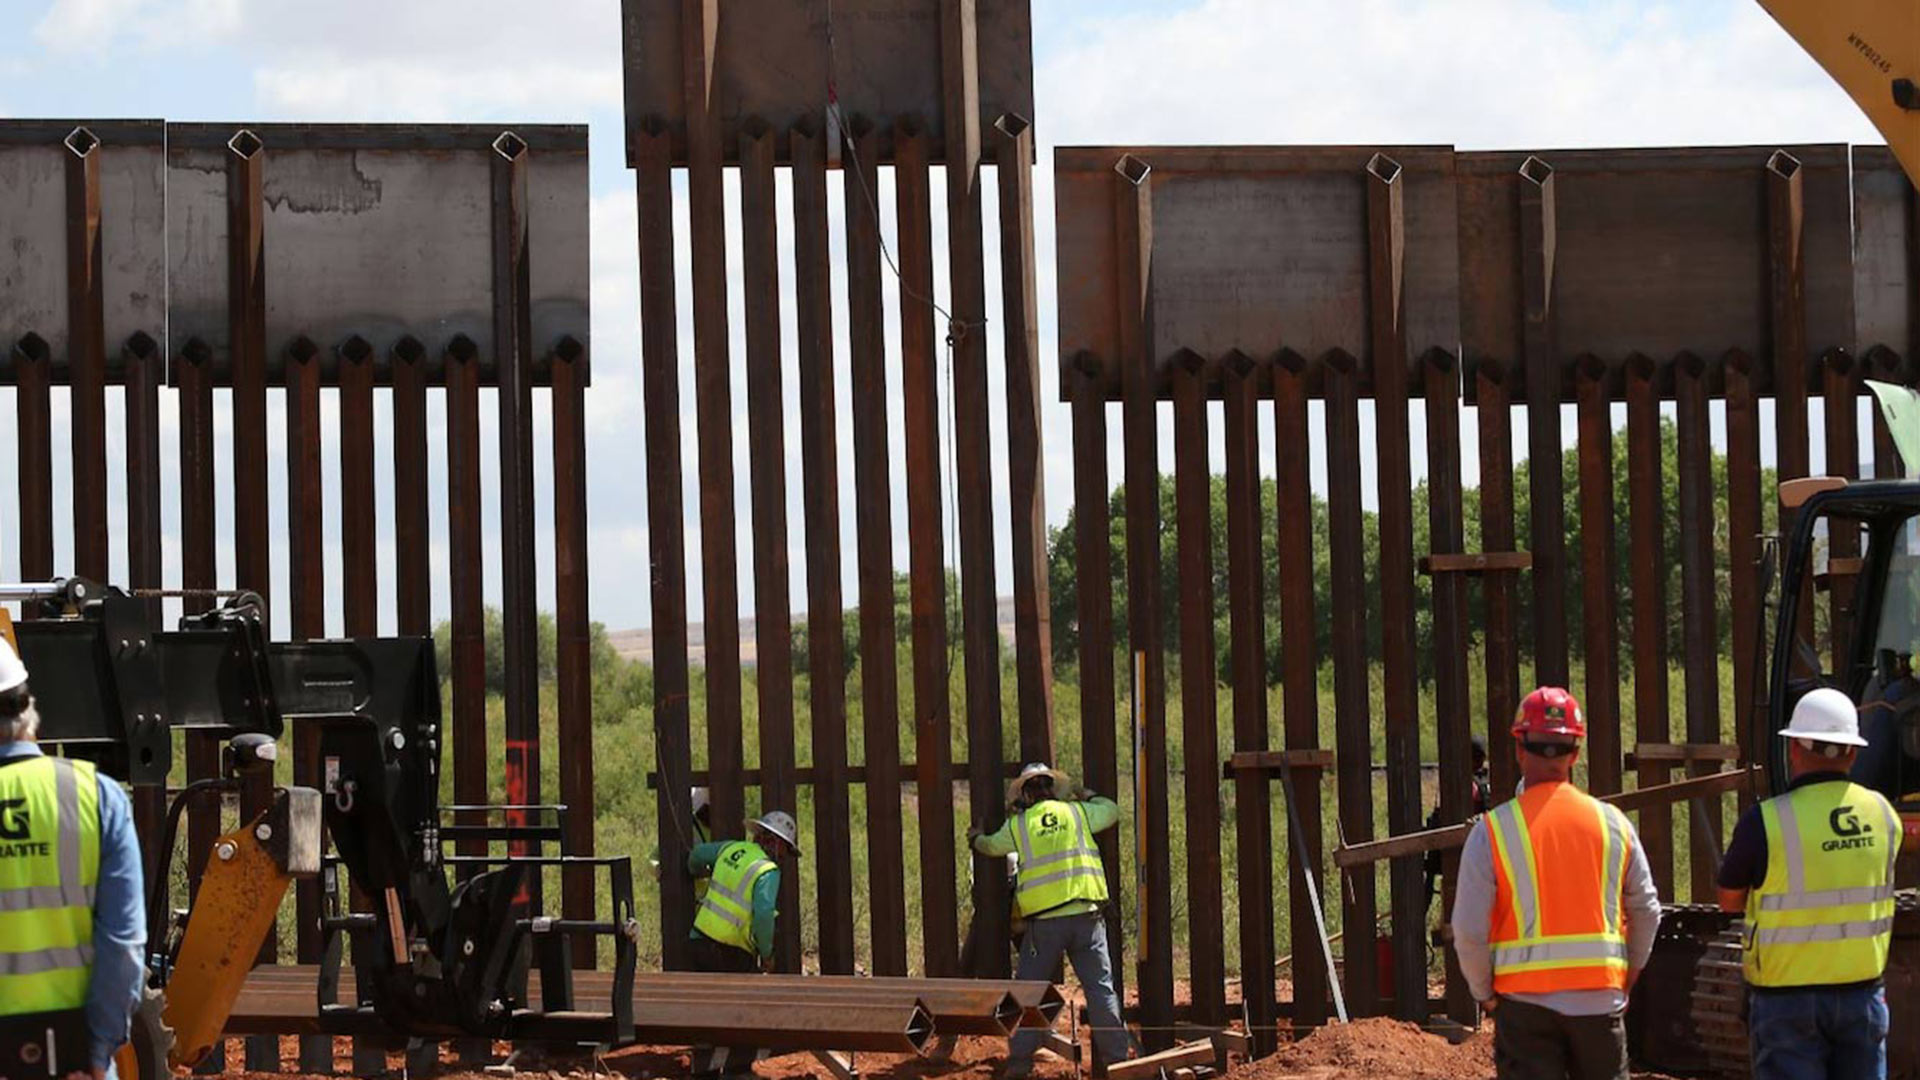 Work on eight-mile stretch of border fence took four years to complete.